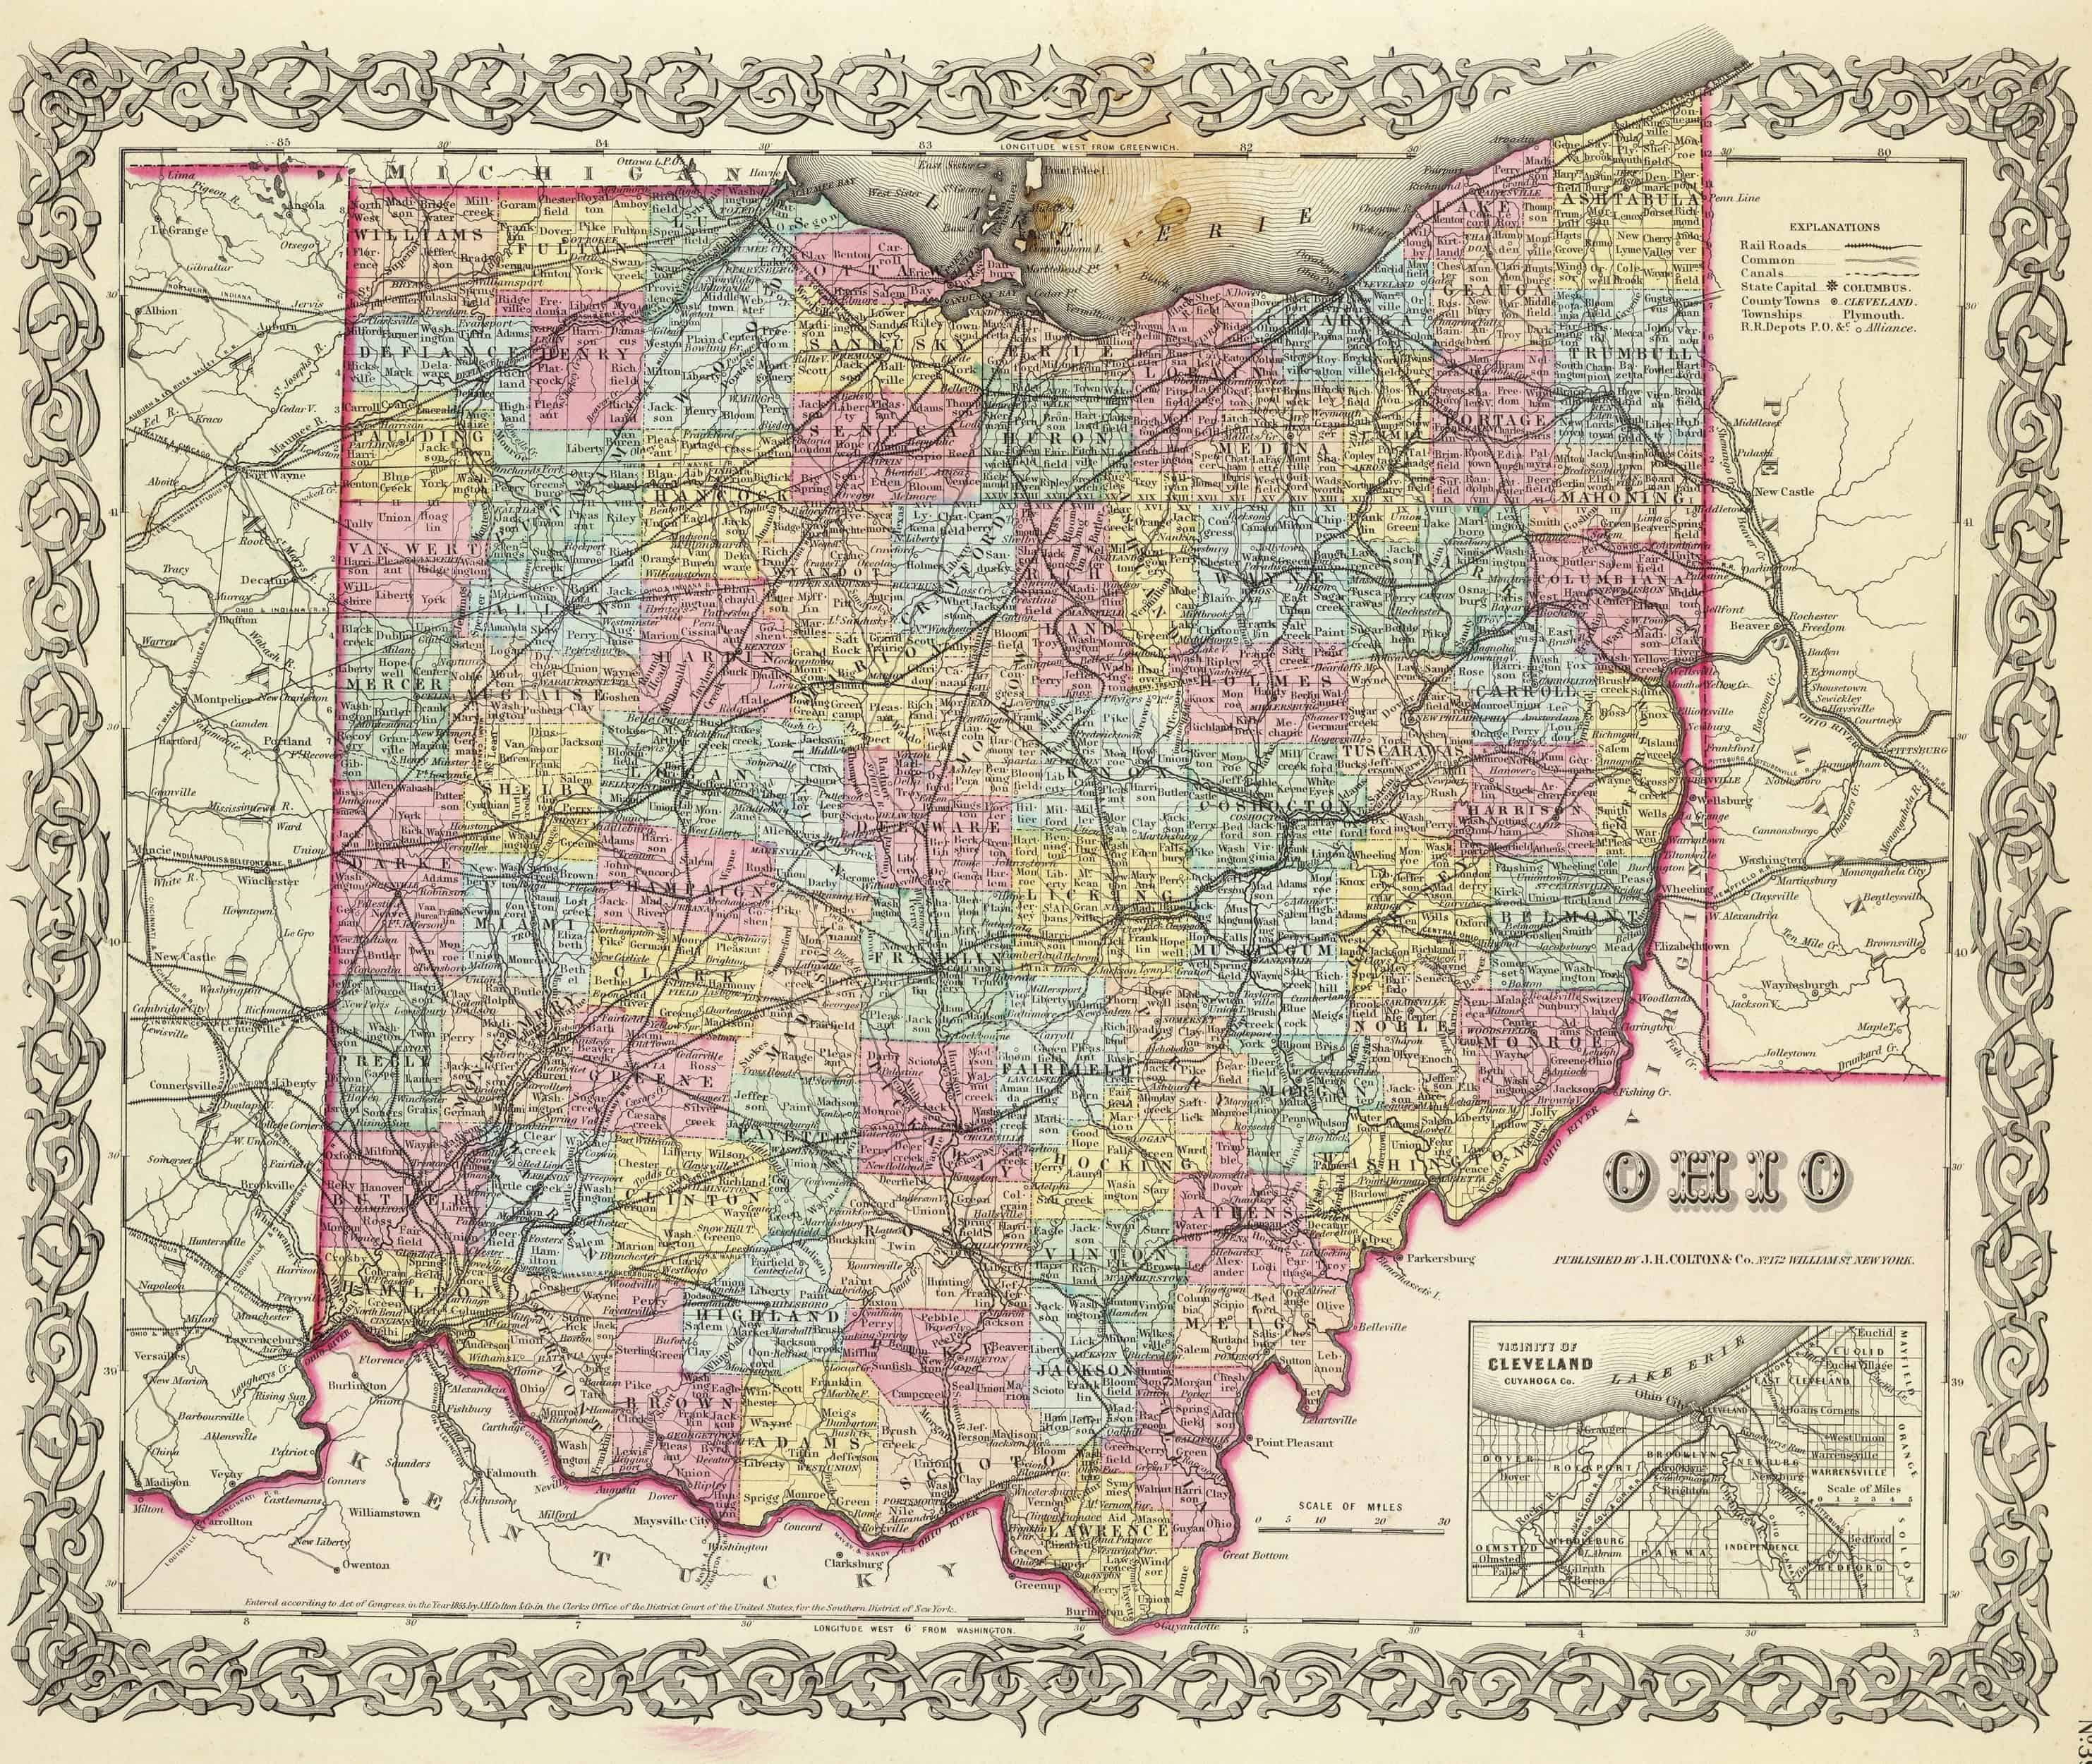 Old Historical City, County and State Maps of Ohio